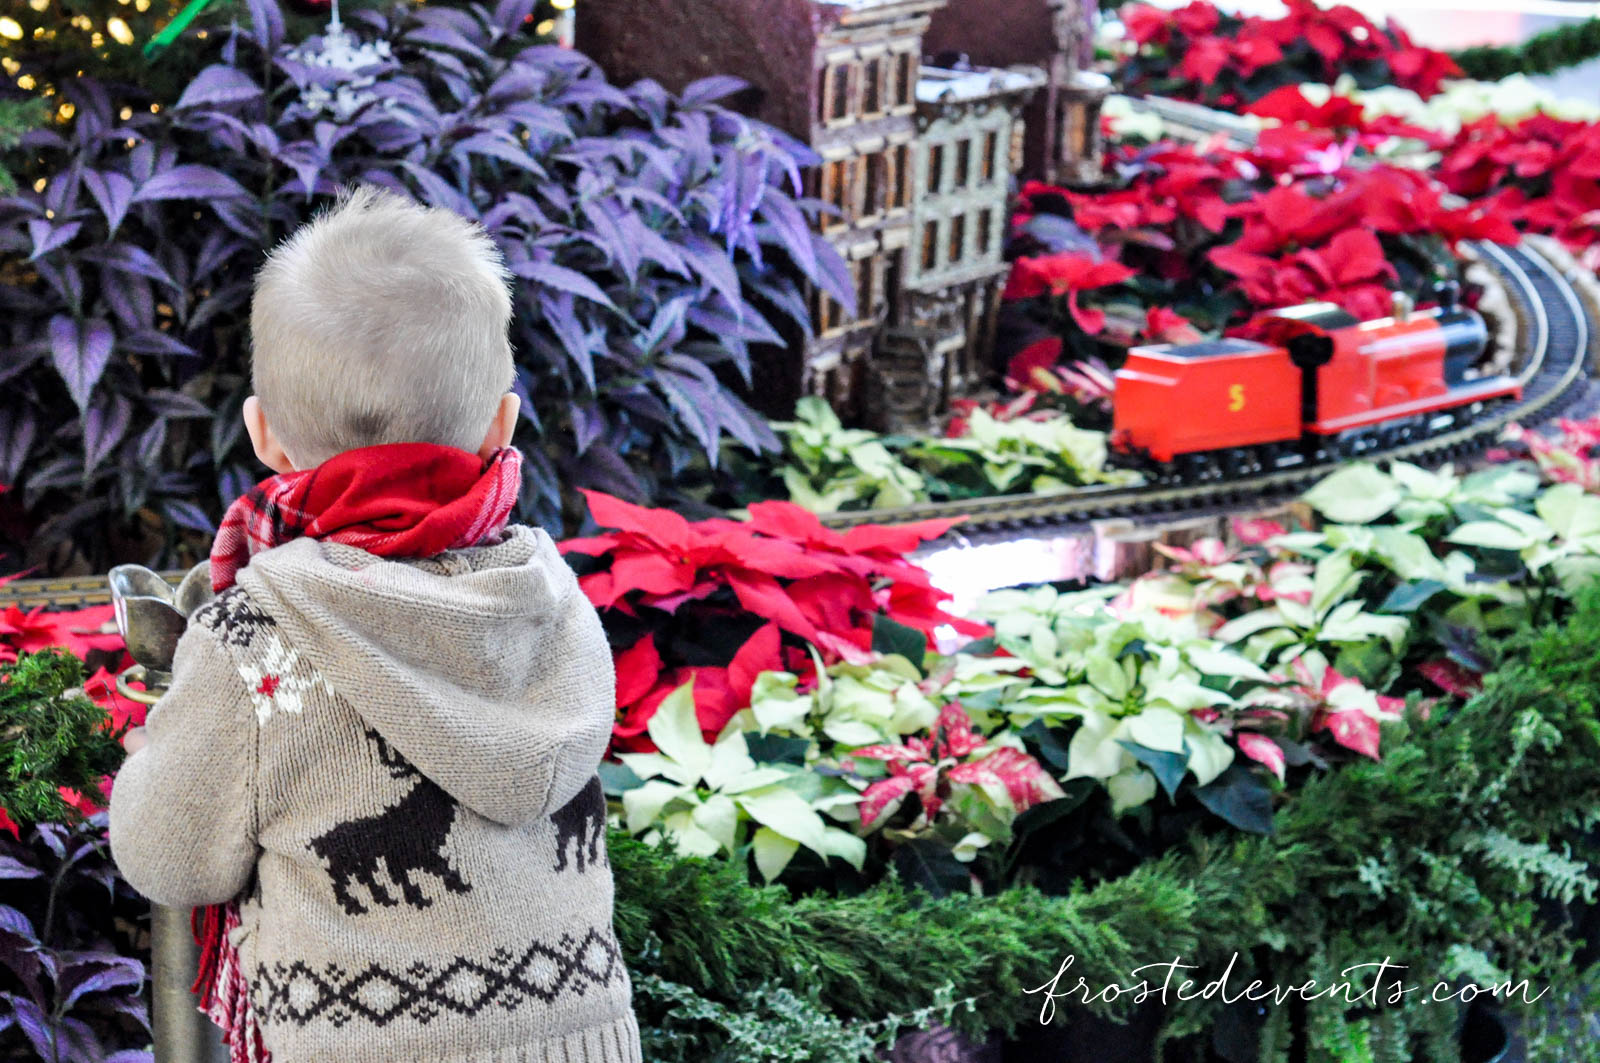 national-botanical-gardens-christmas-2015-washington-dc-family-travel-11